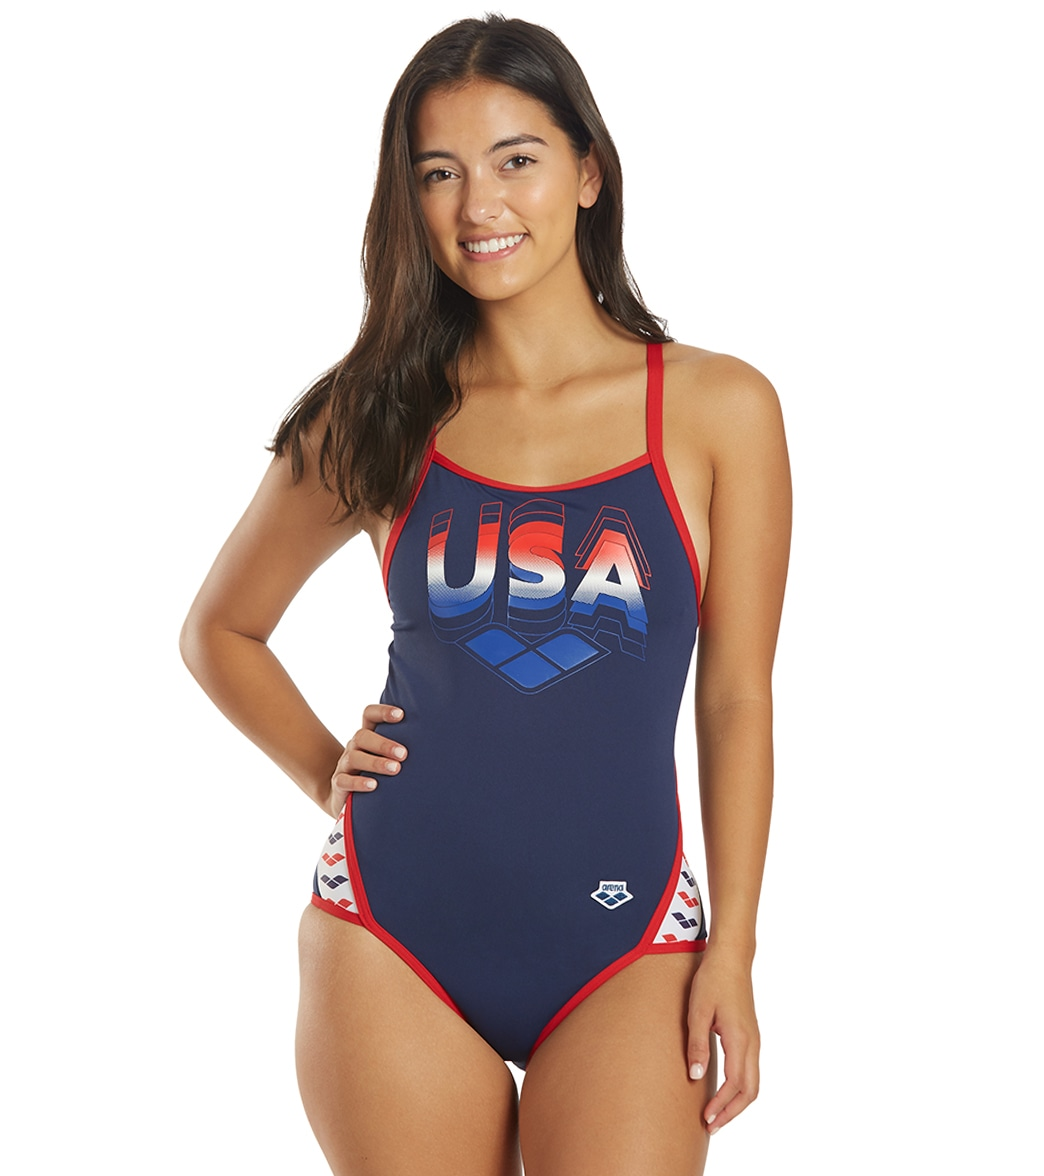 Arena Women's Mark Spitz Serigraphy Super Fly Back One Piece Swimsuit